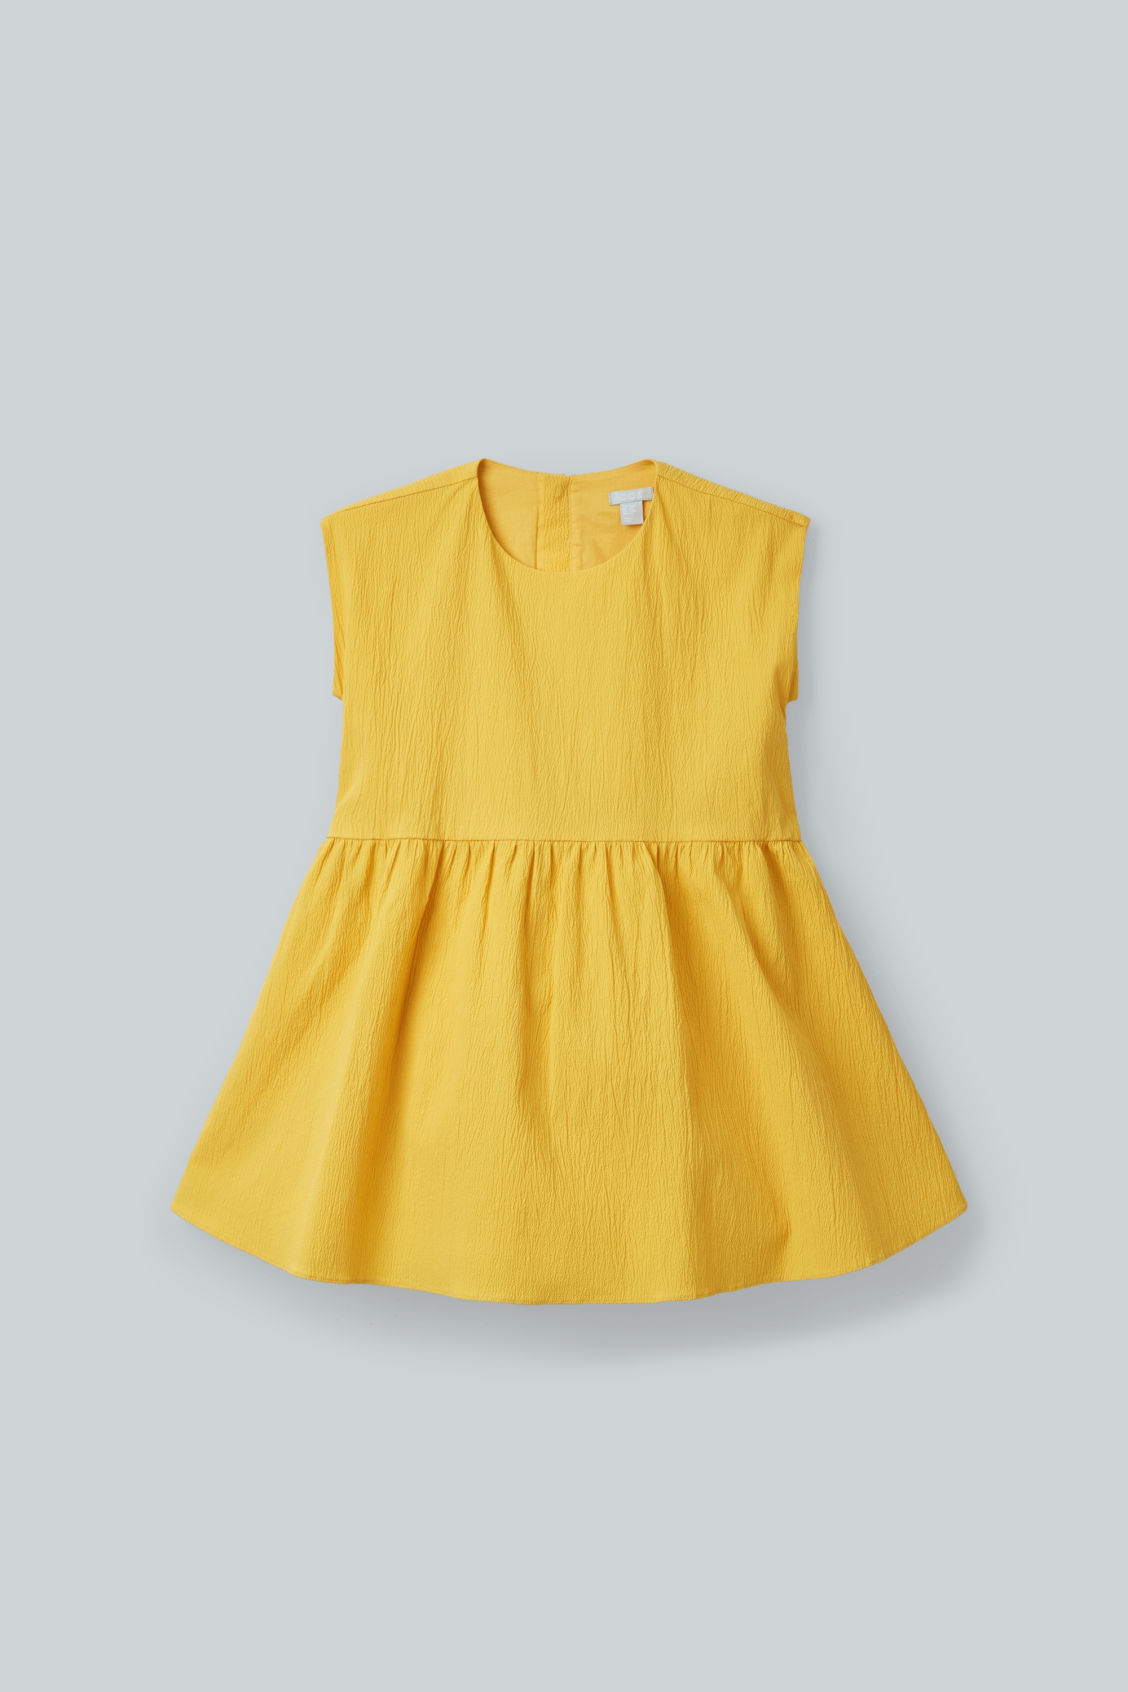 Detailed image of Cos seersucker circle-cut dress in yellow